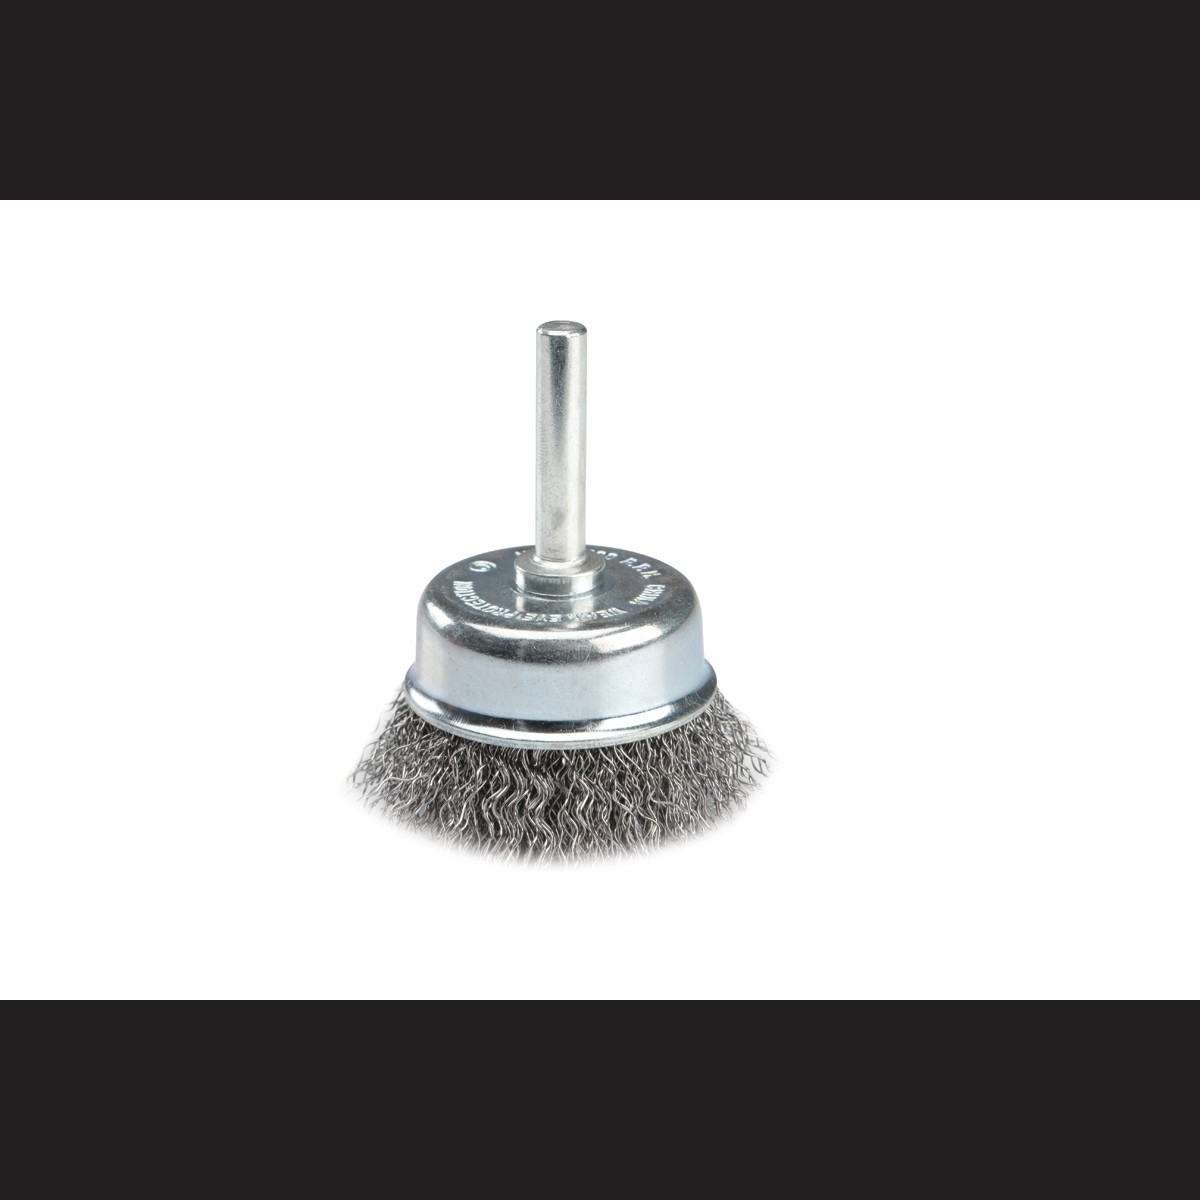 2 in. Wire Cup Brush with 1/4 in. Shank